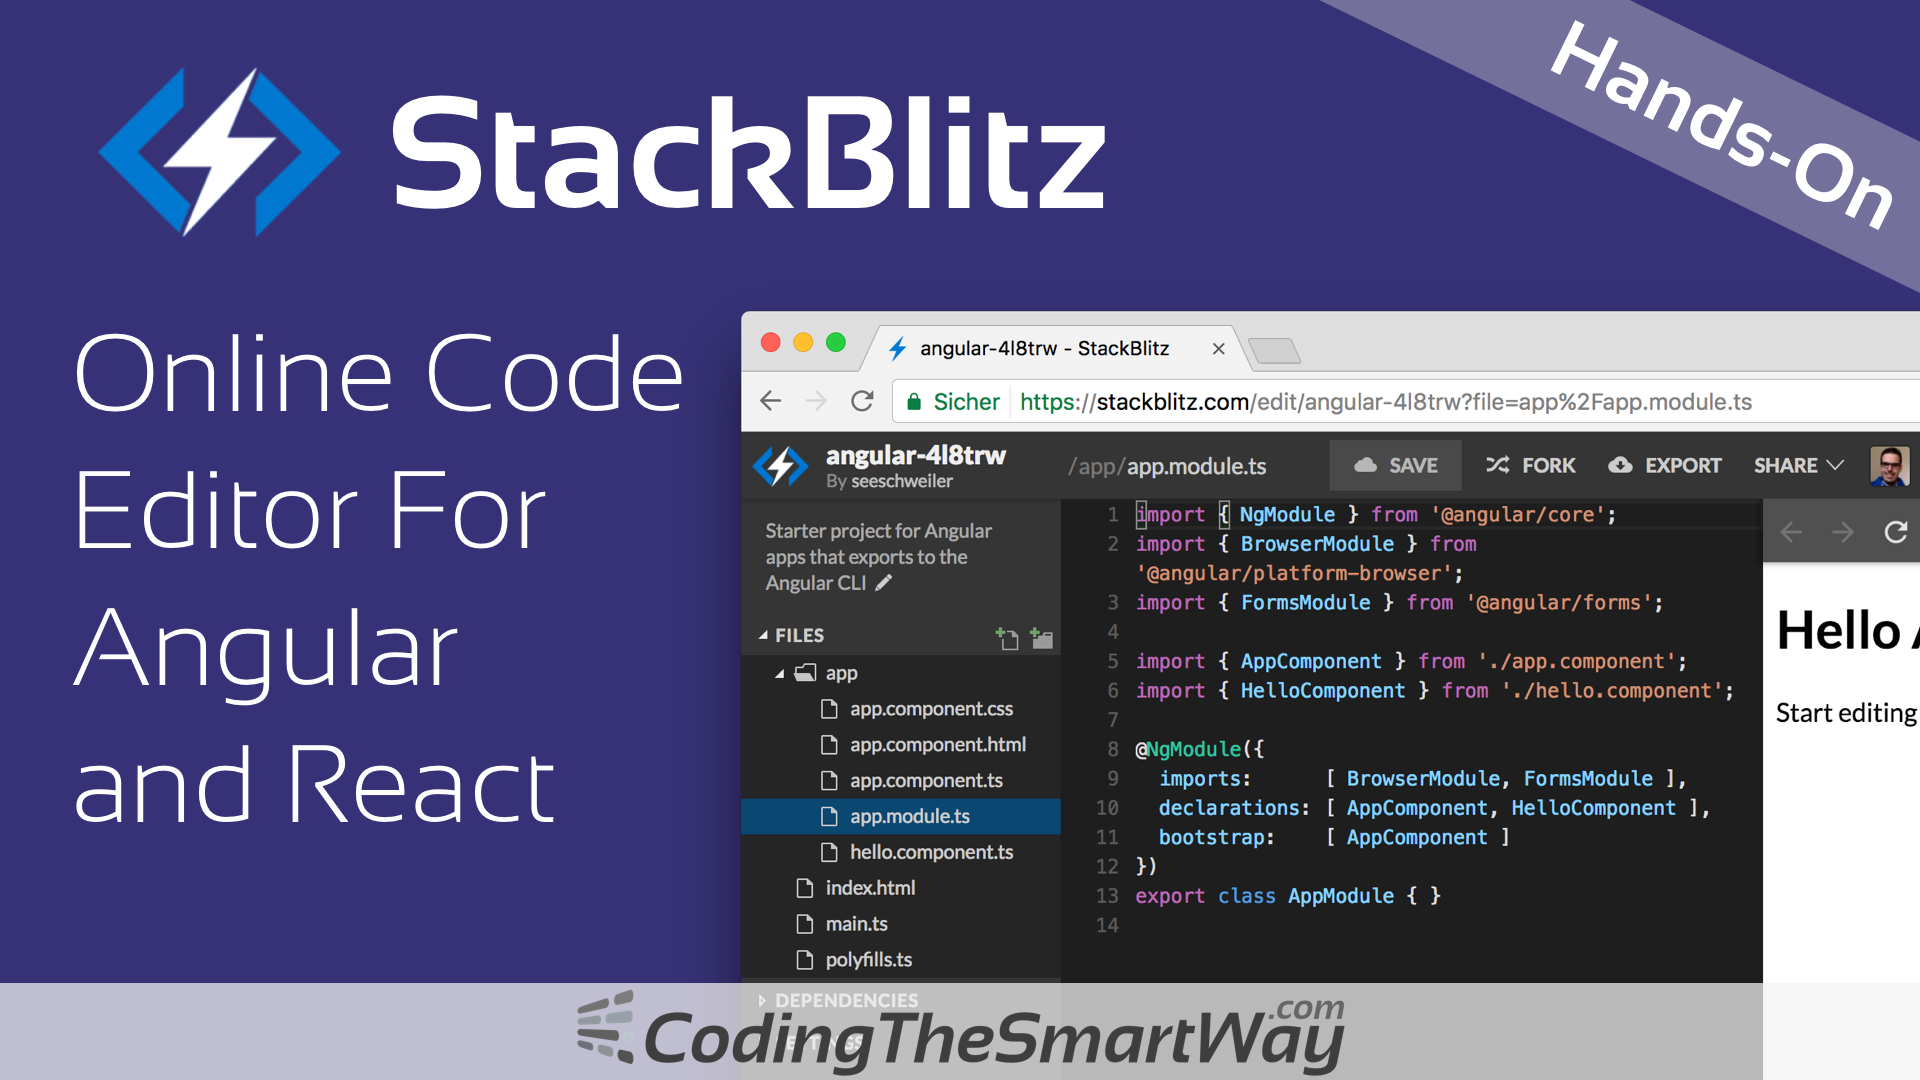 StackBlitz — Online Code Editor For Angular and React